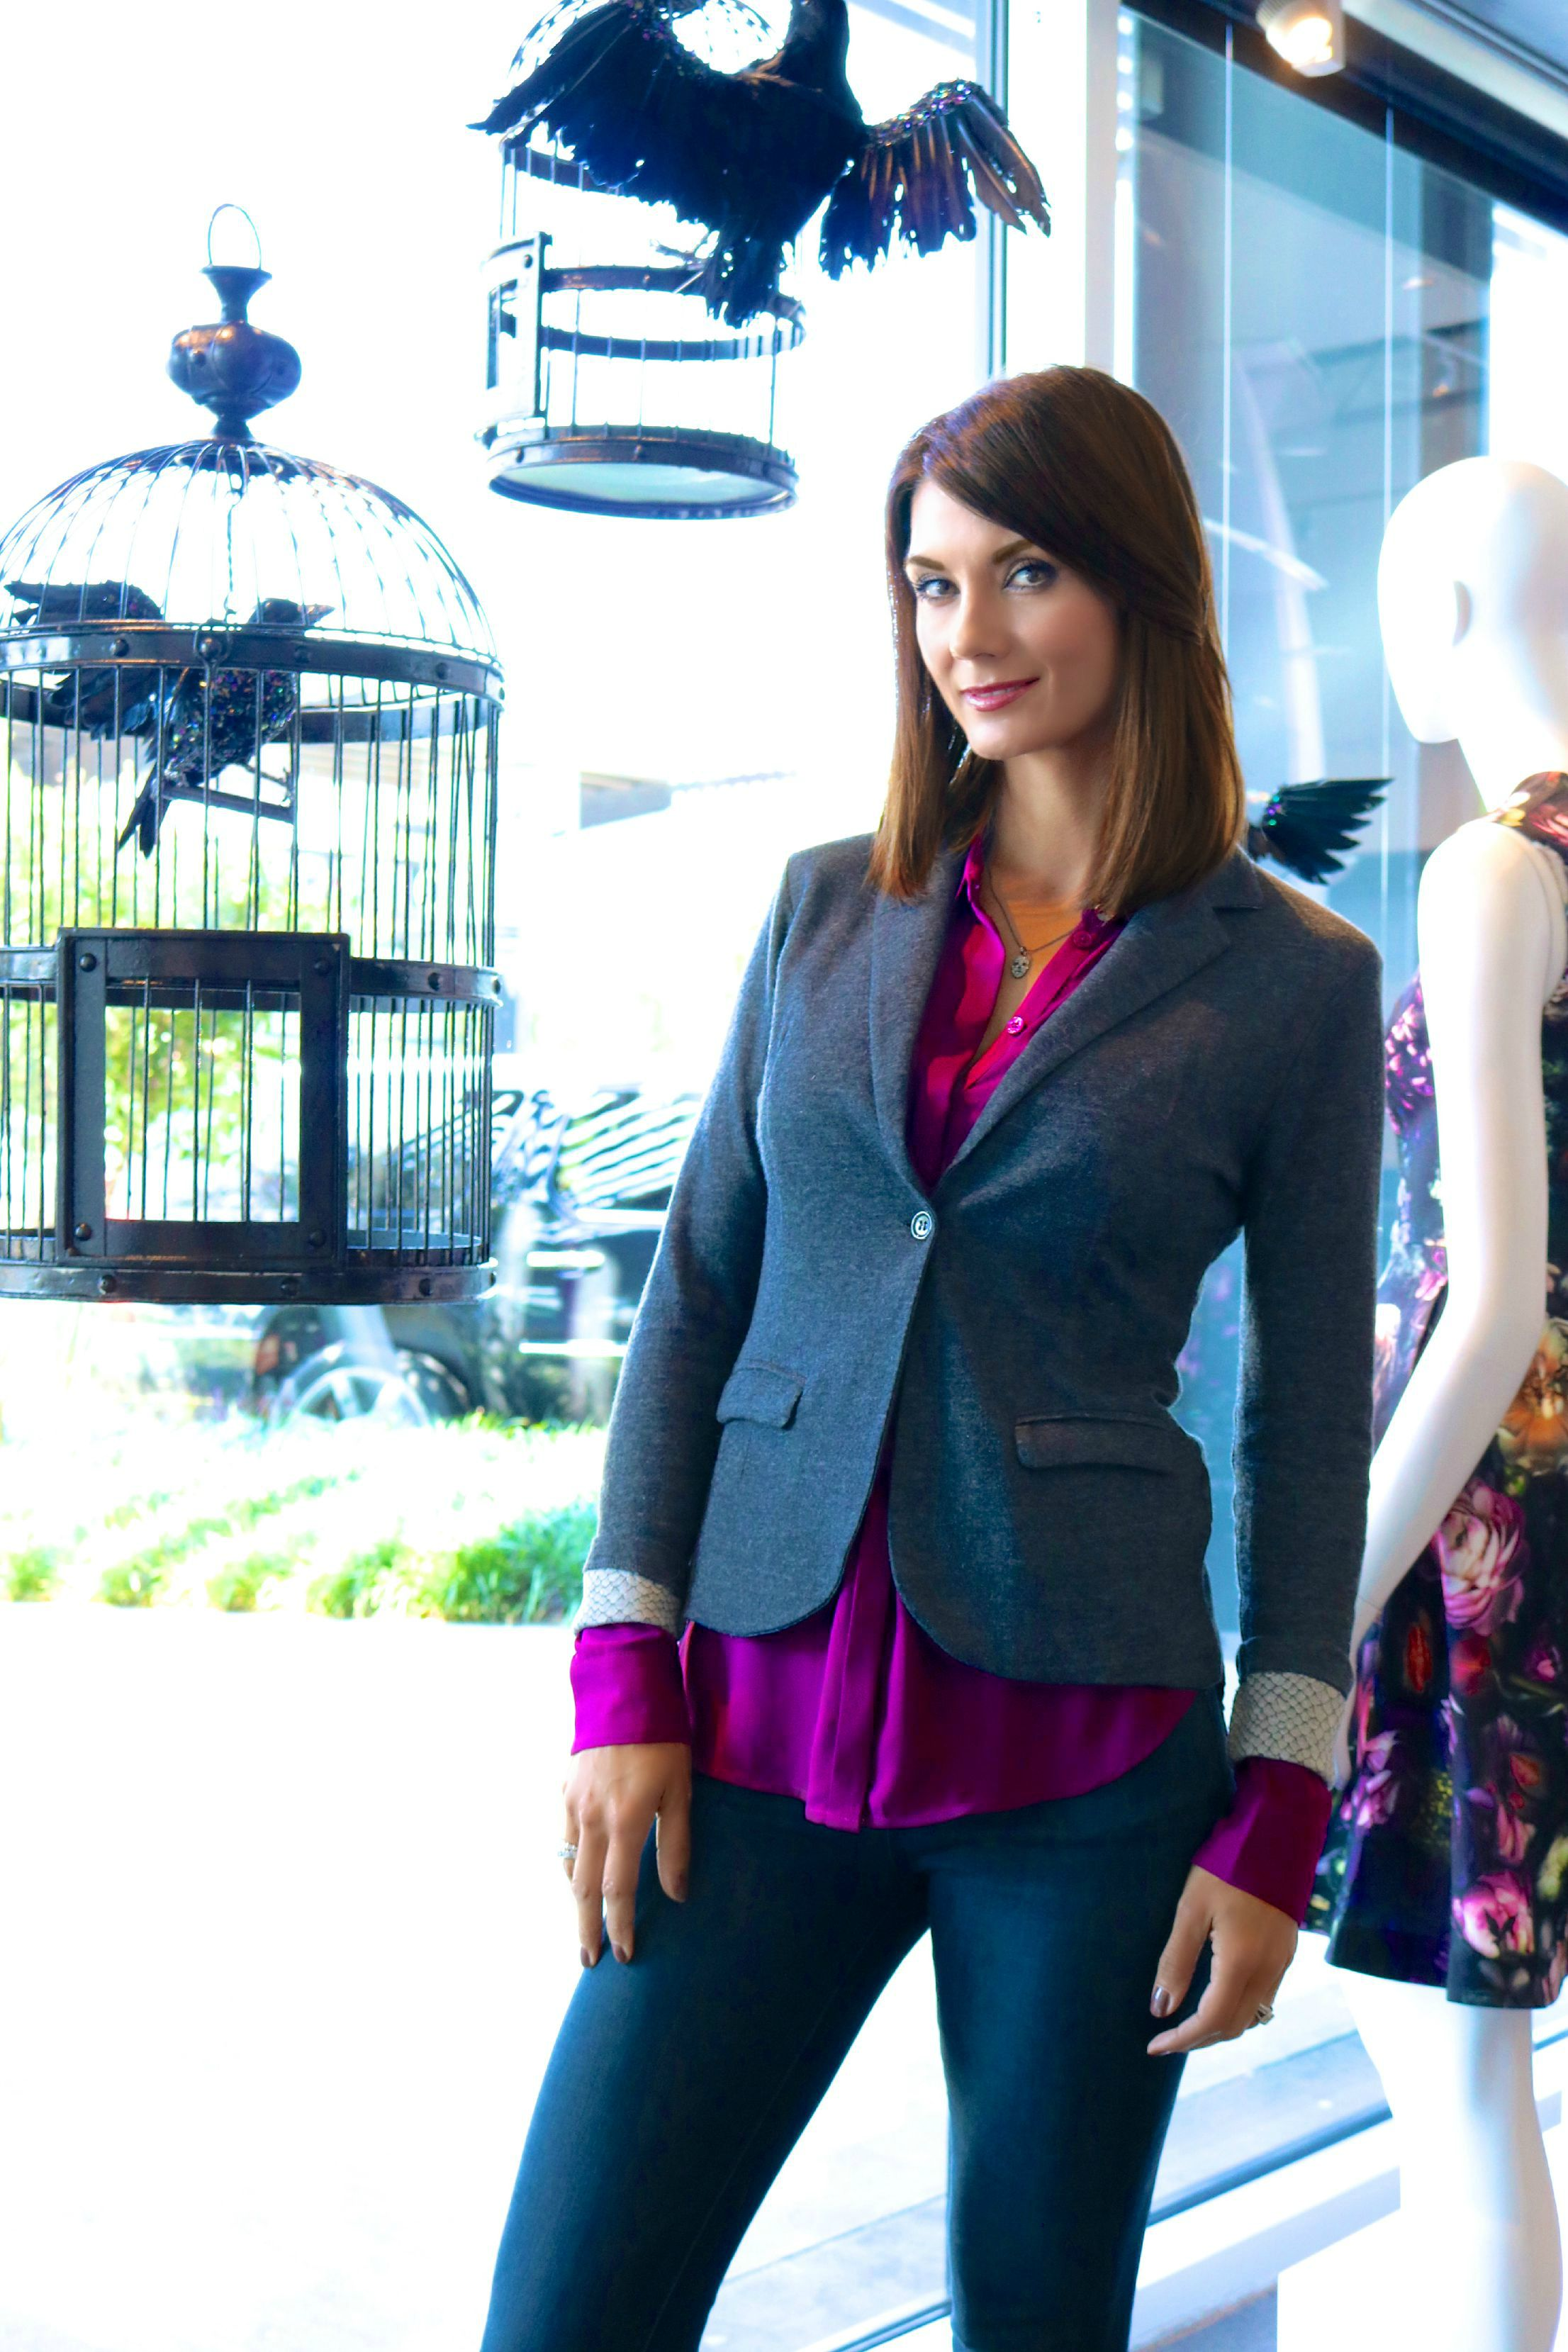 Majestic Python Printed Blazer in Anthracite & Ted Baker Blouse Available In Store Only